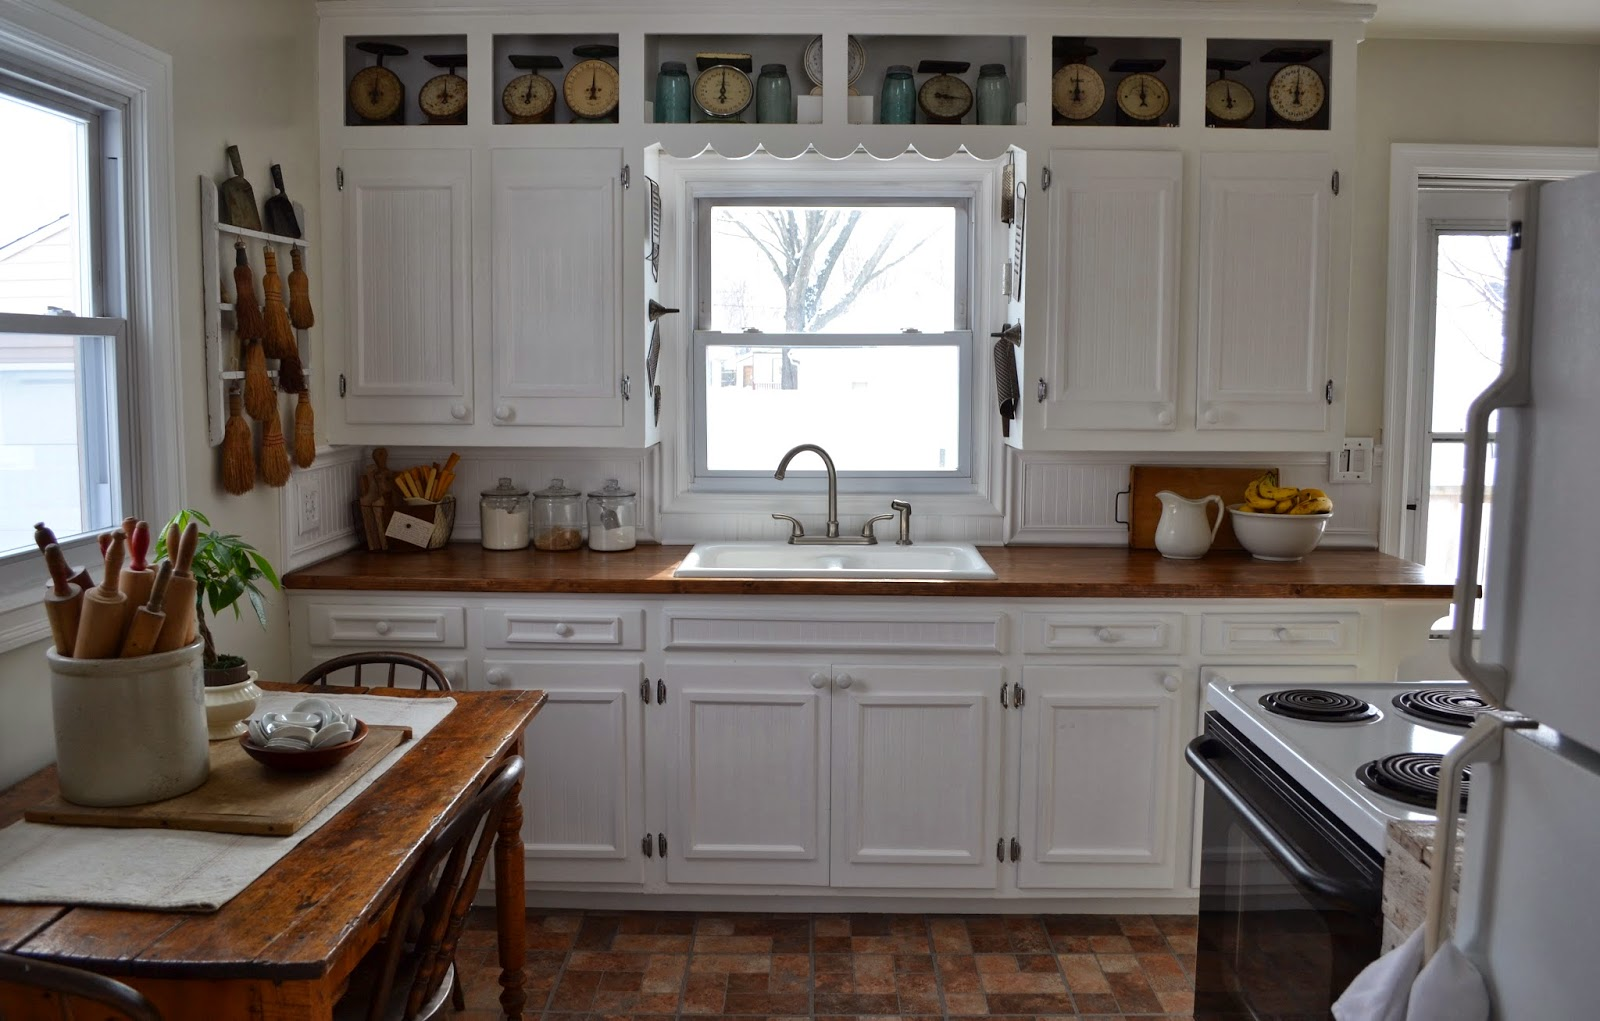 Antique Looking Kitchen Cabinets Shabby Love Quotwhat 39s Your Style Quot Series Kitchen Edition